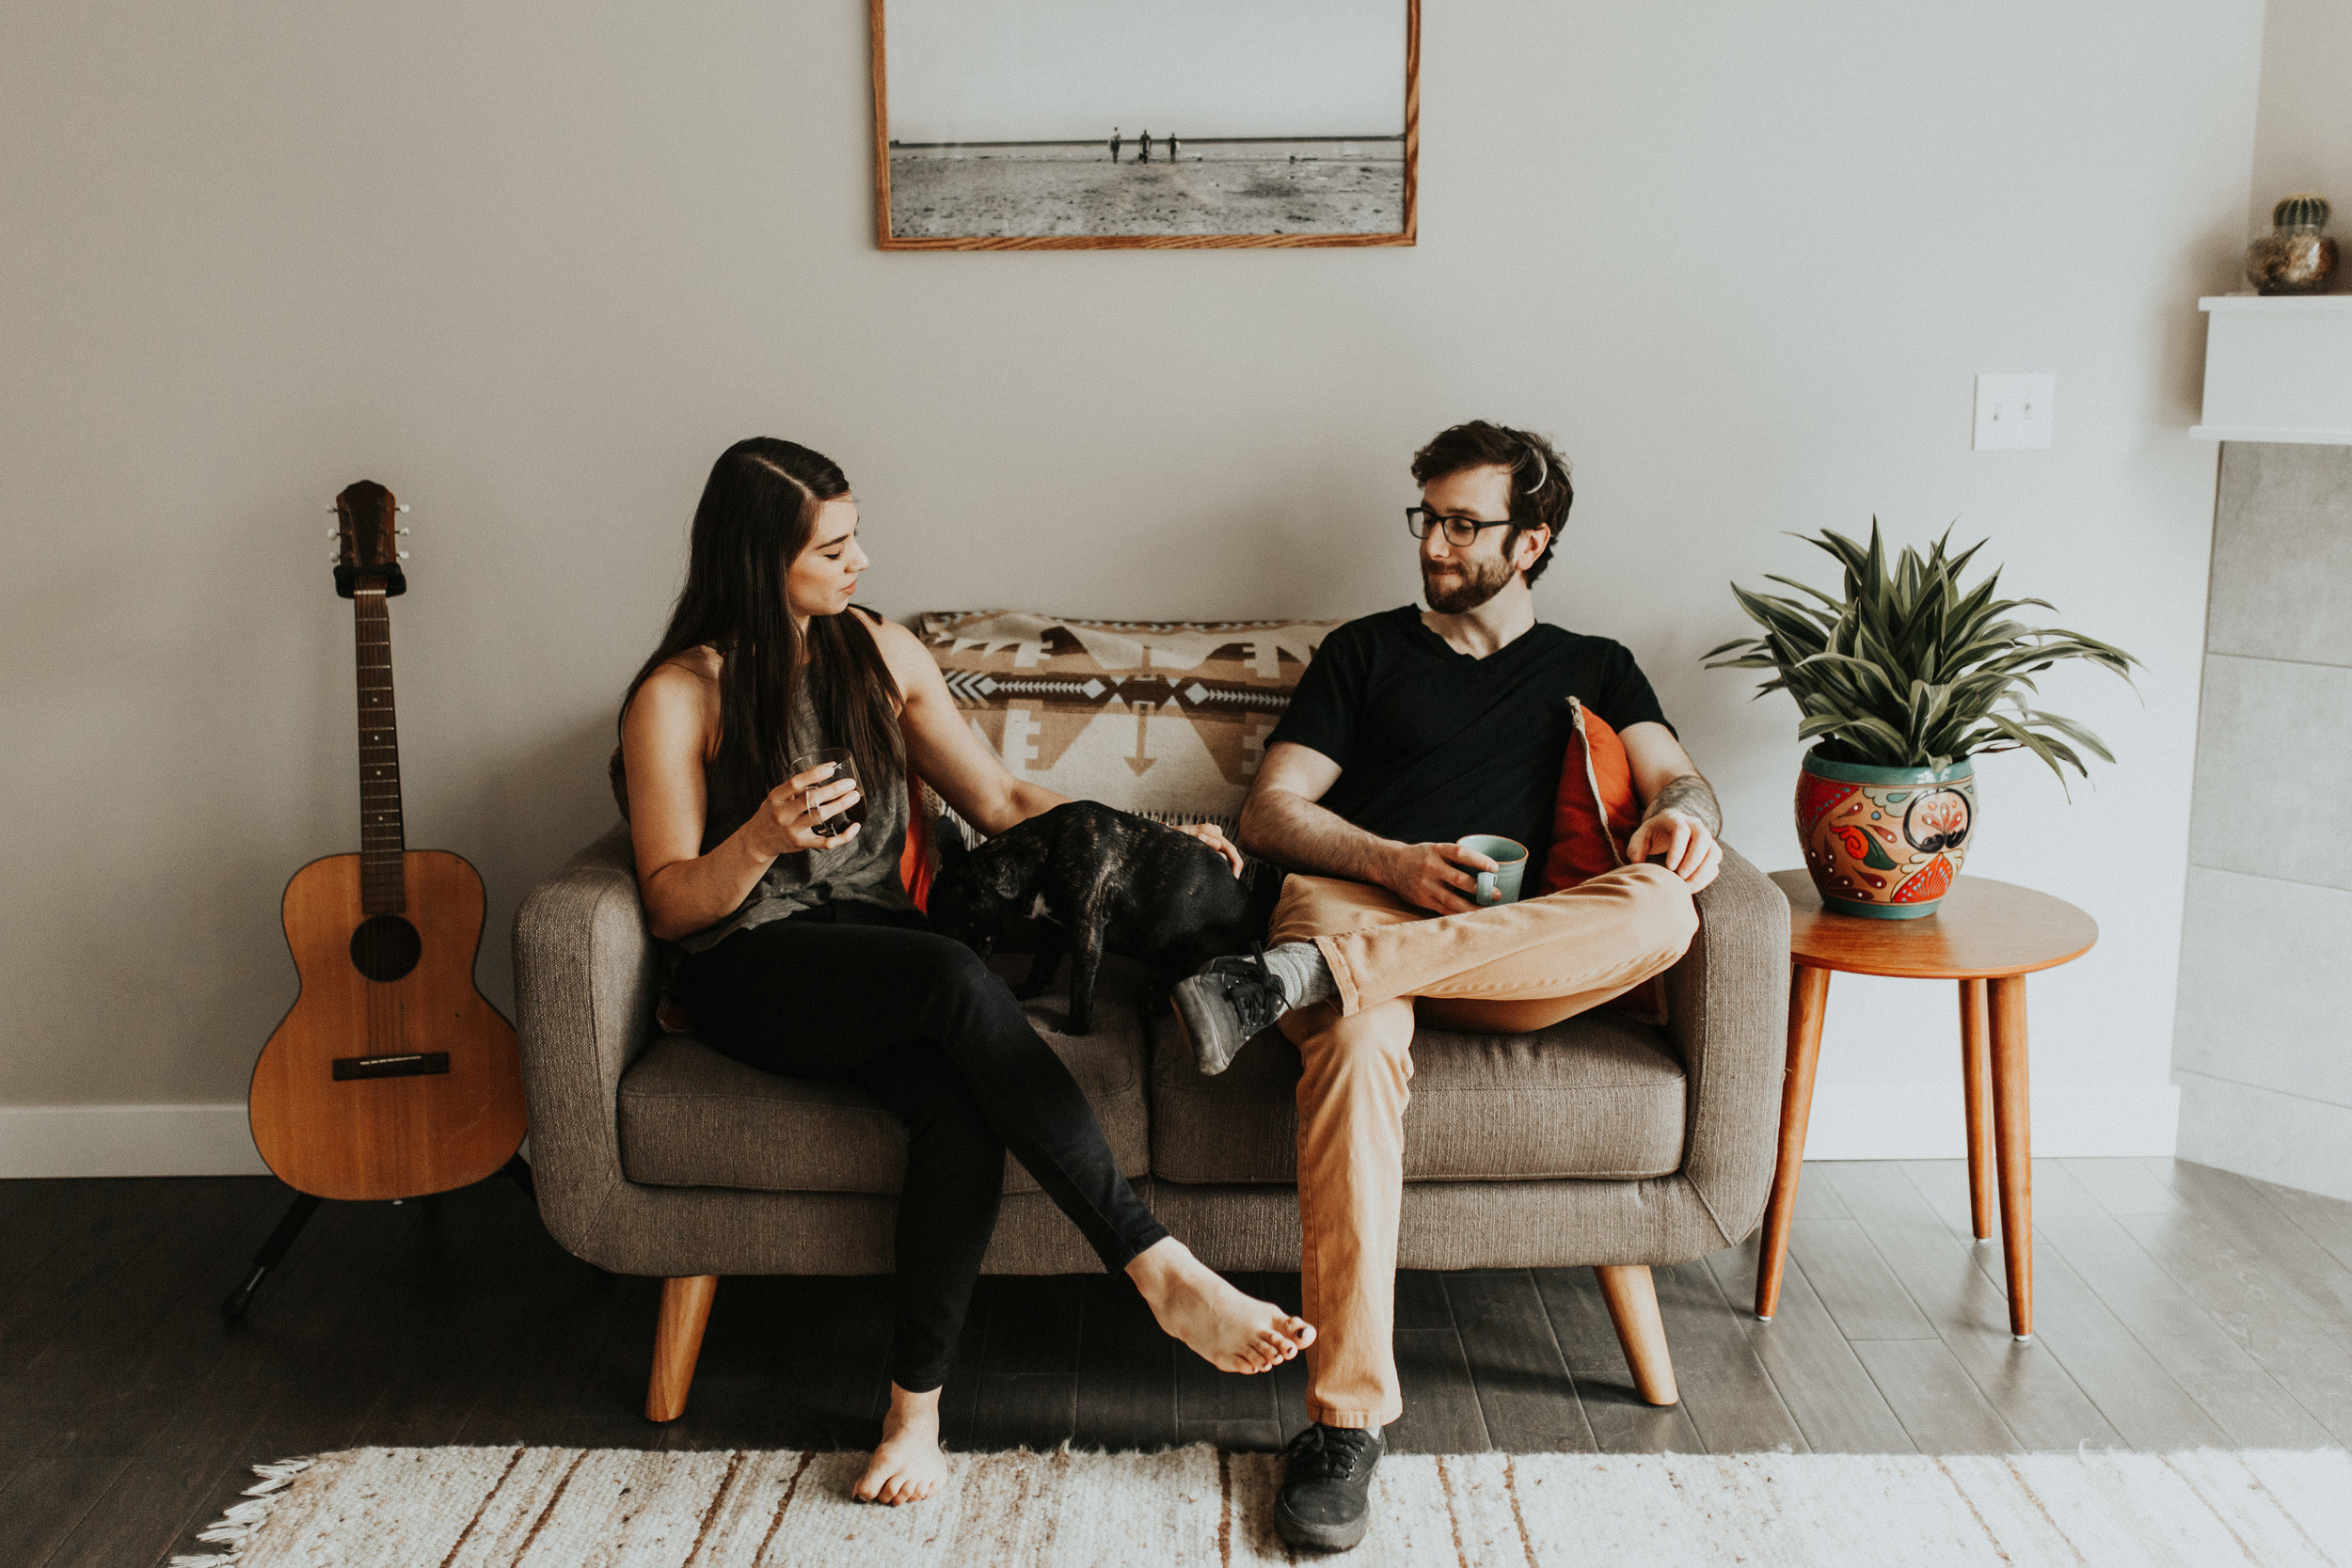 Seattle Wedding Photographer - Boho Vibes - Eclectic Home - Bohemian Decor - Simplistic Home - Minimalistic Style - In-Home Couple's Session - Intimate Day-After Session - Bellingham Couple's Photographer - Bellingham Wedding Photographer - PNW Photographer - In-Home Engagement Session